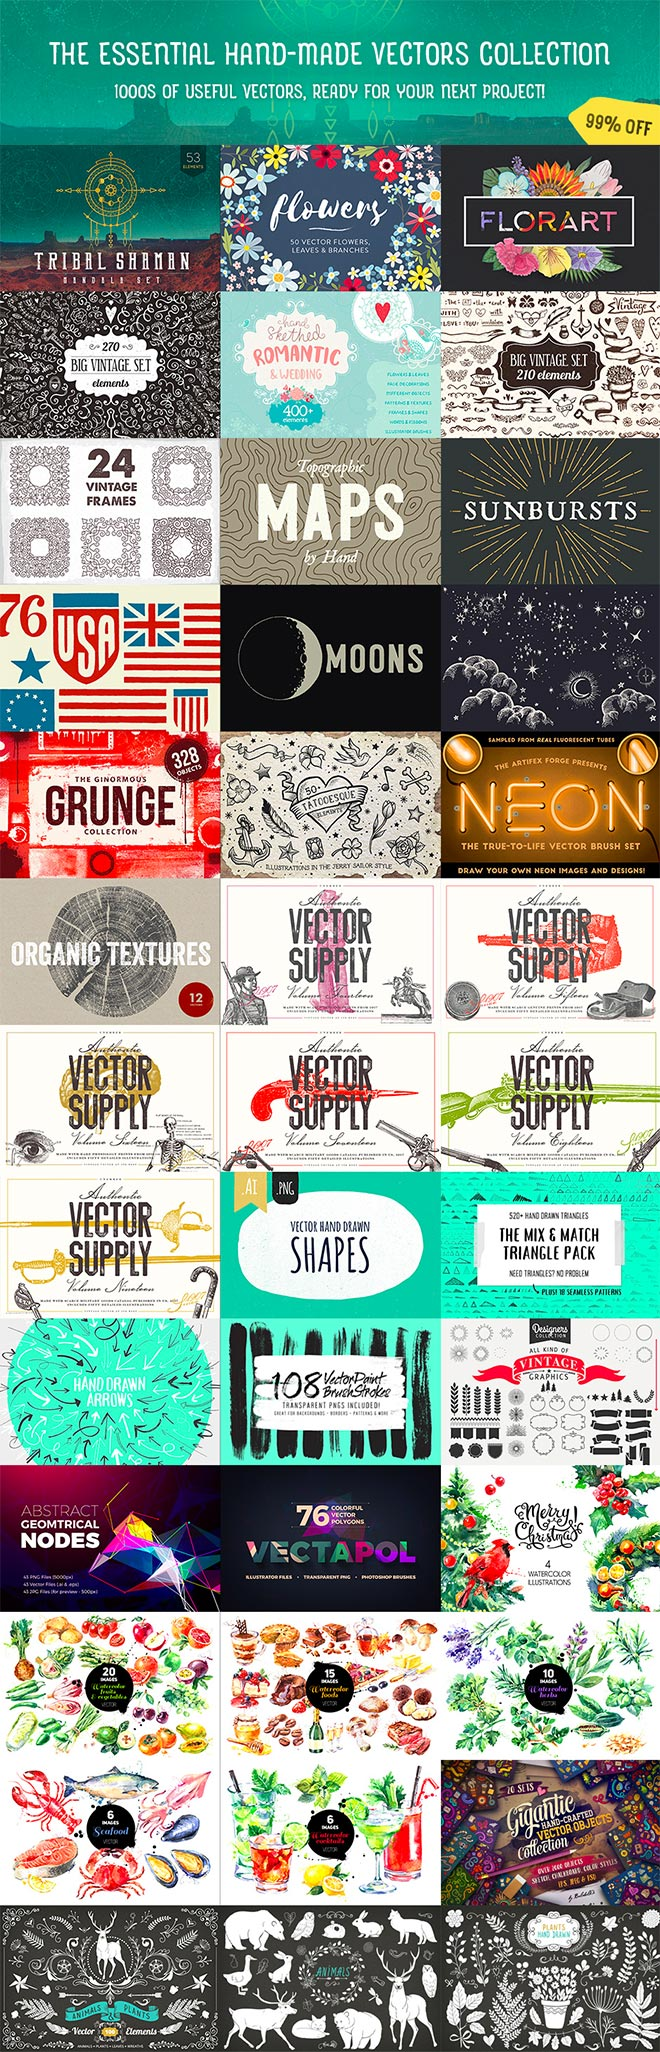 A Huge Variety of Vector Graphics Packs for Just $29 (99% off)